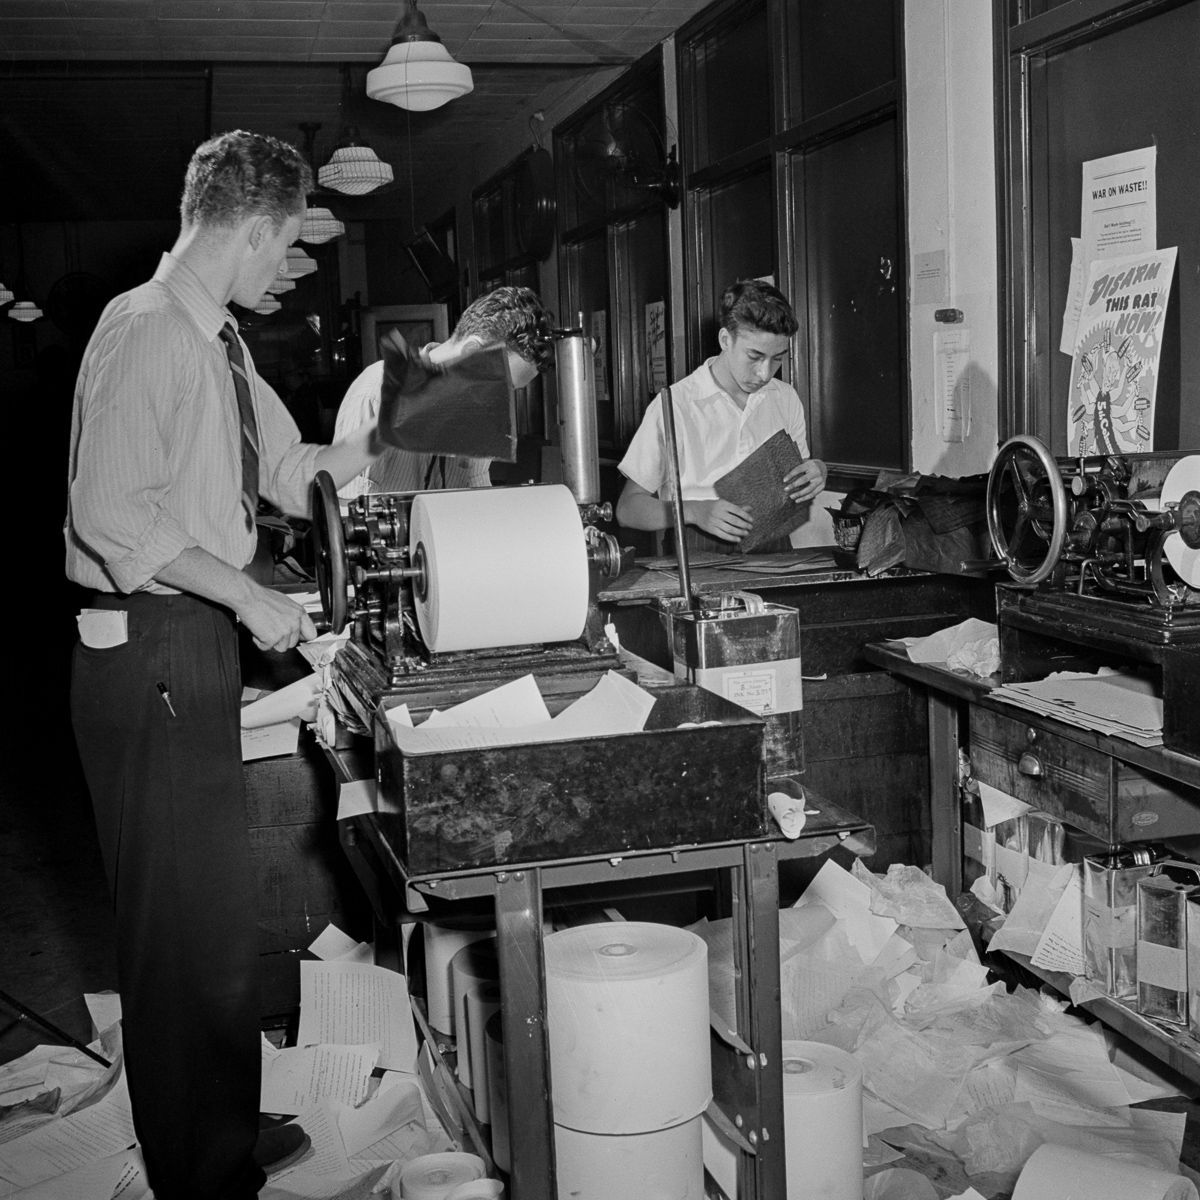 Copy boys mimeograph the dispatches from the telegraphs and pass them through a slot to the newsroom, where they are sorted and distributed to the various desks.